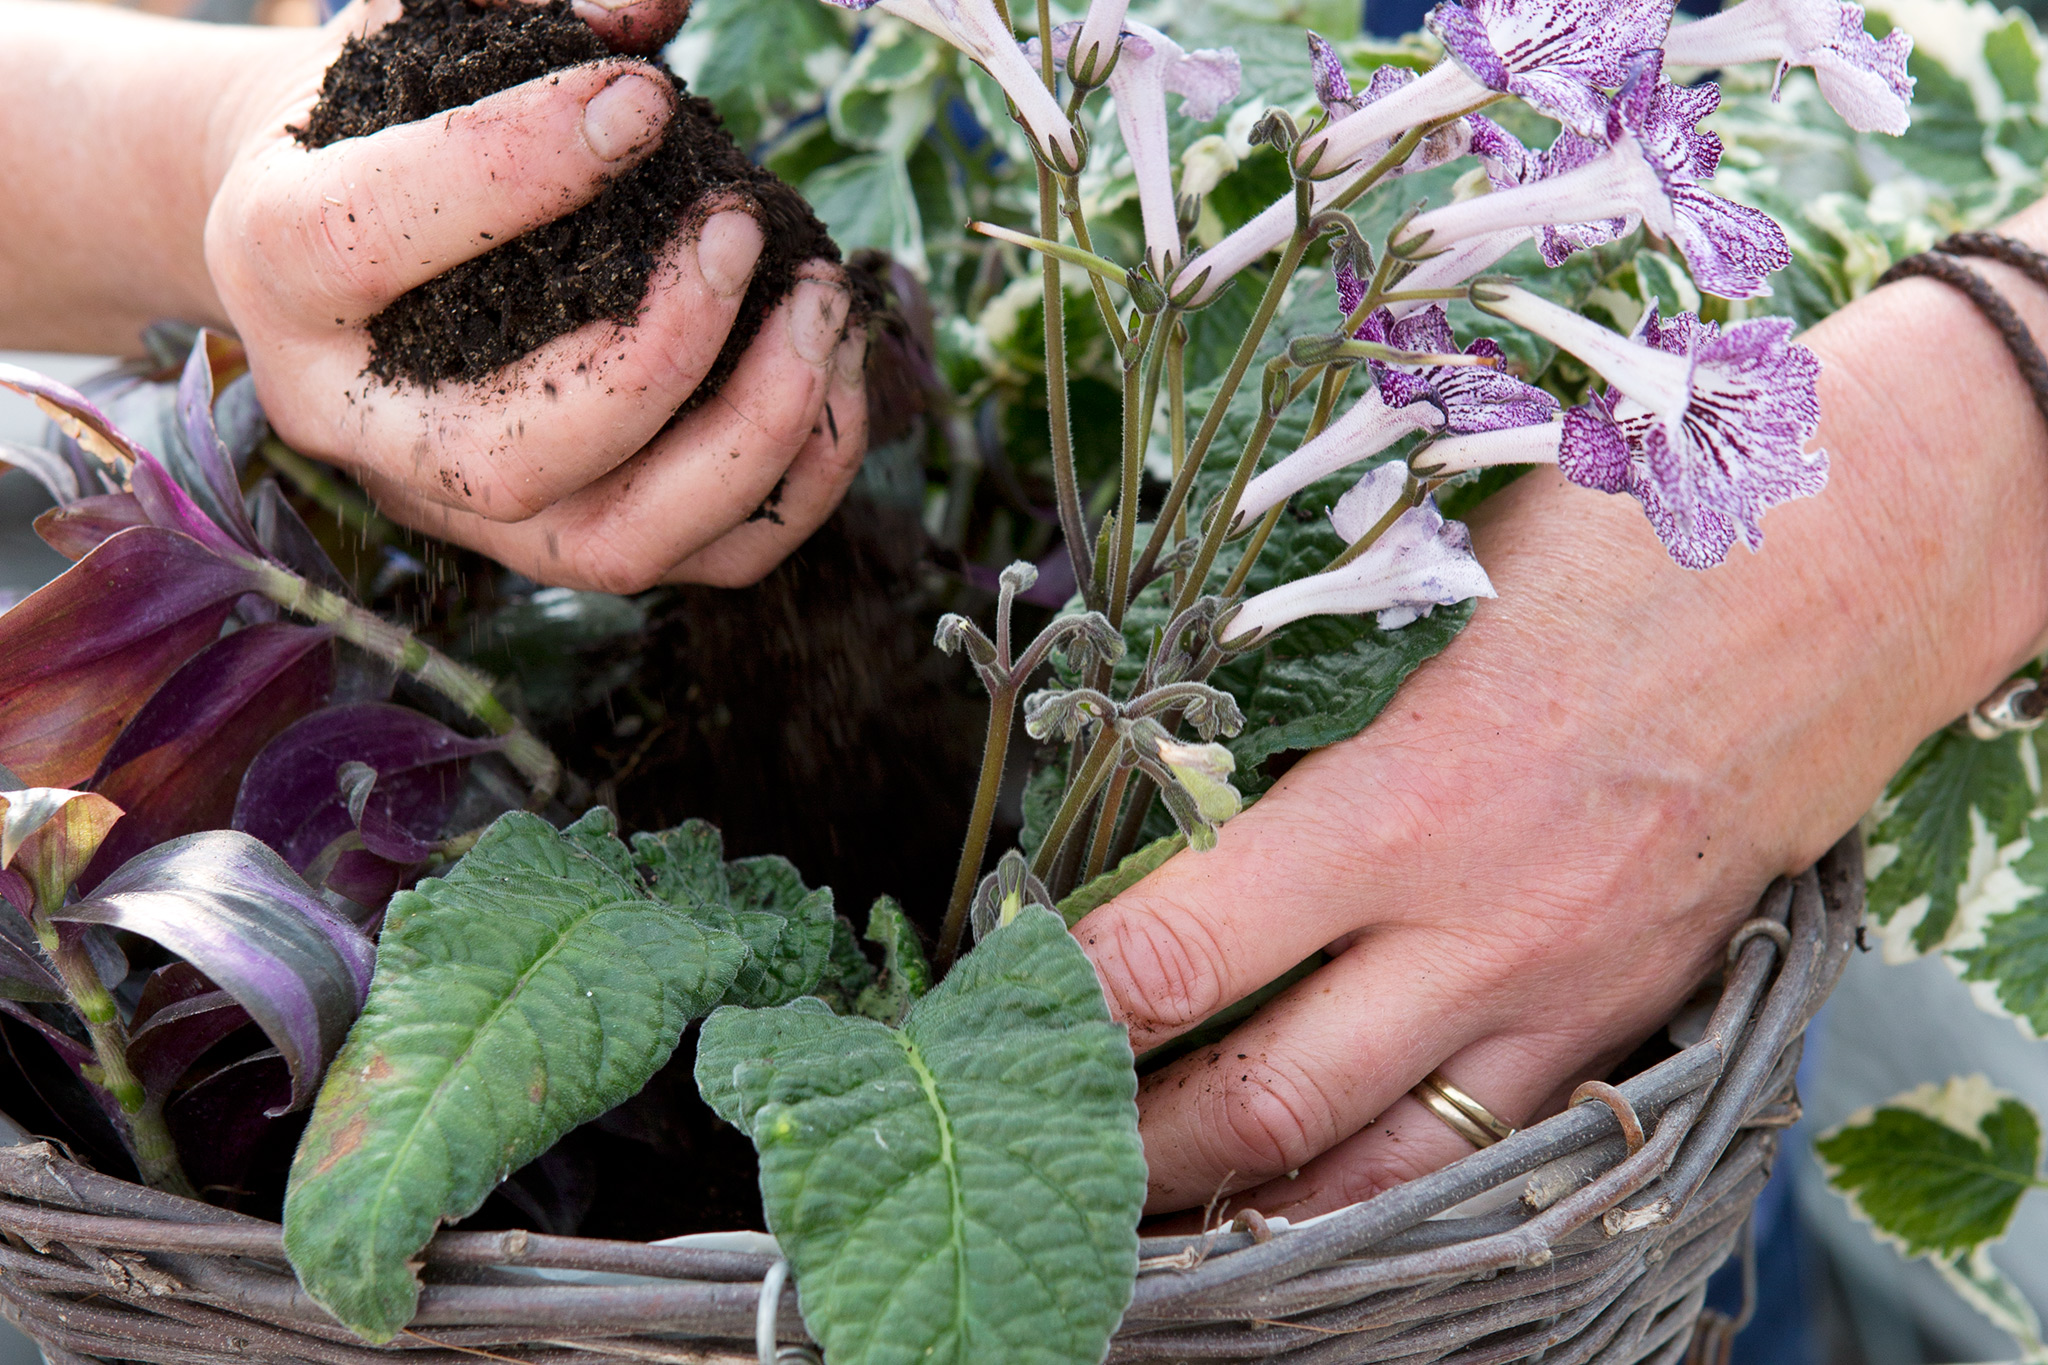 arranging-the-plants-in-the-basket-2